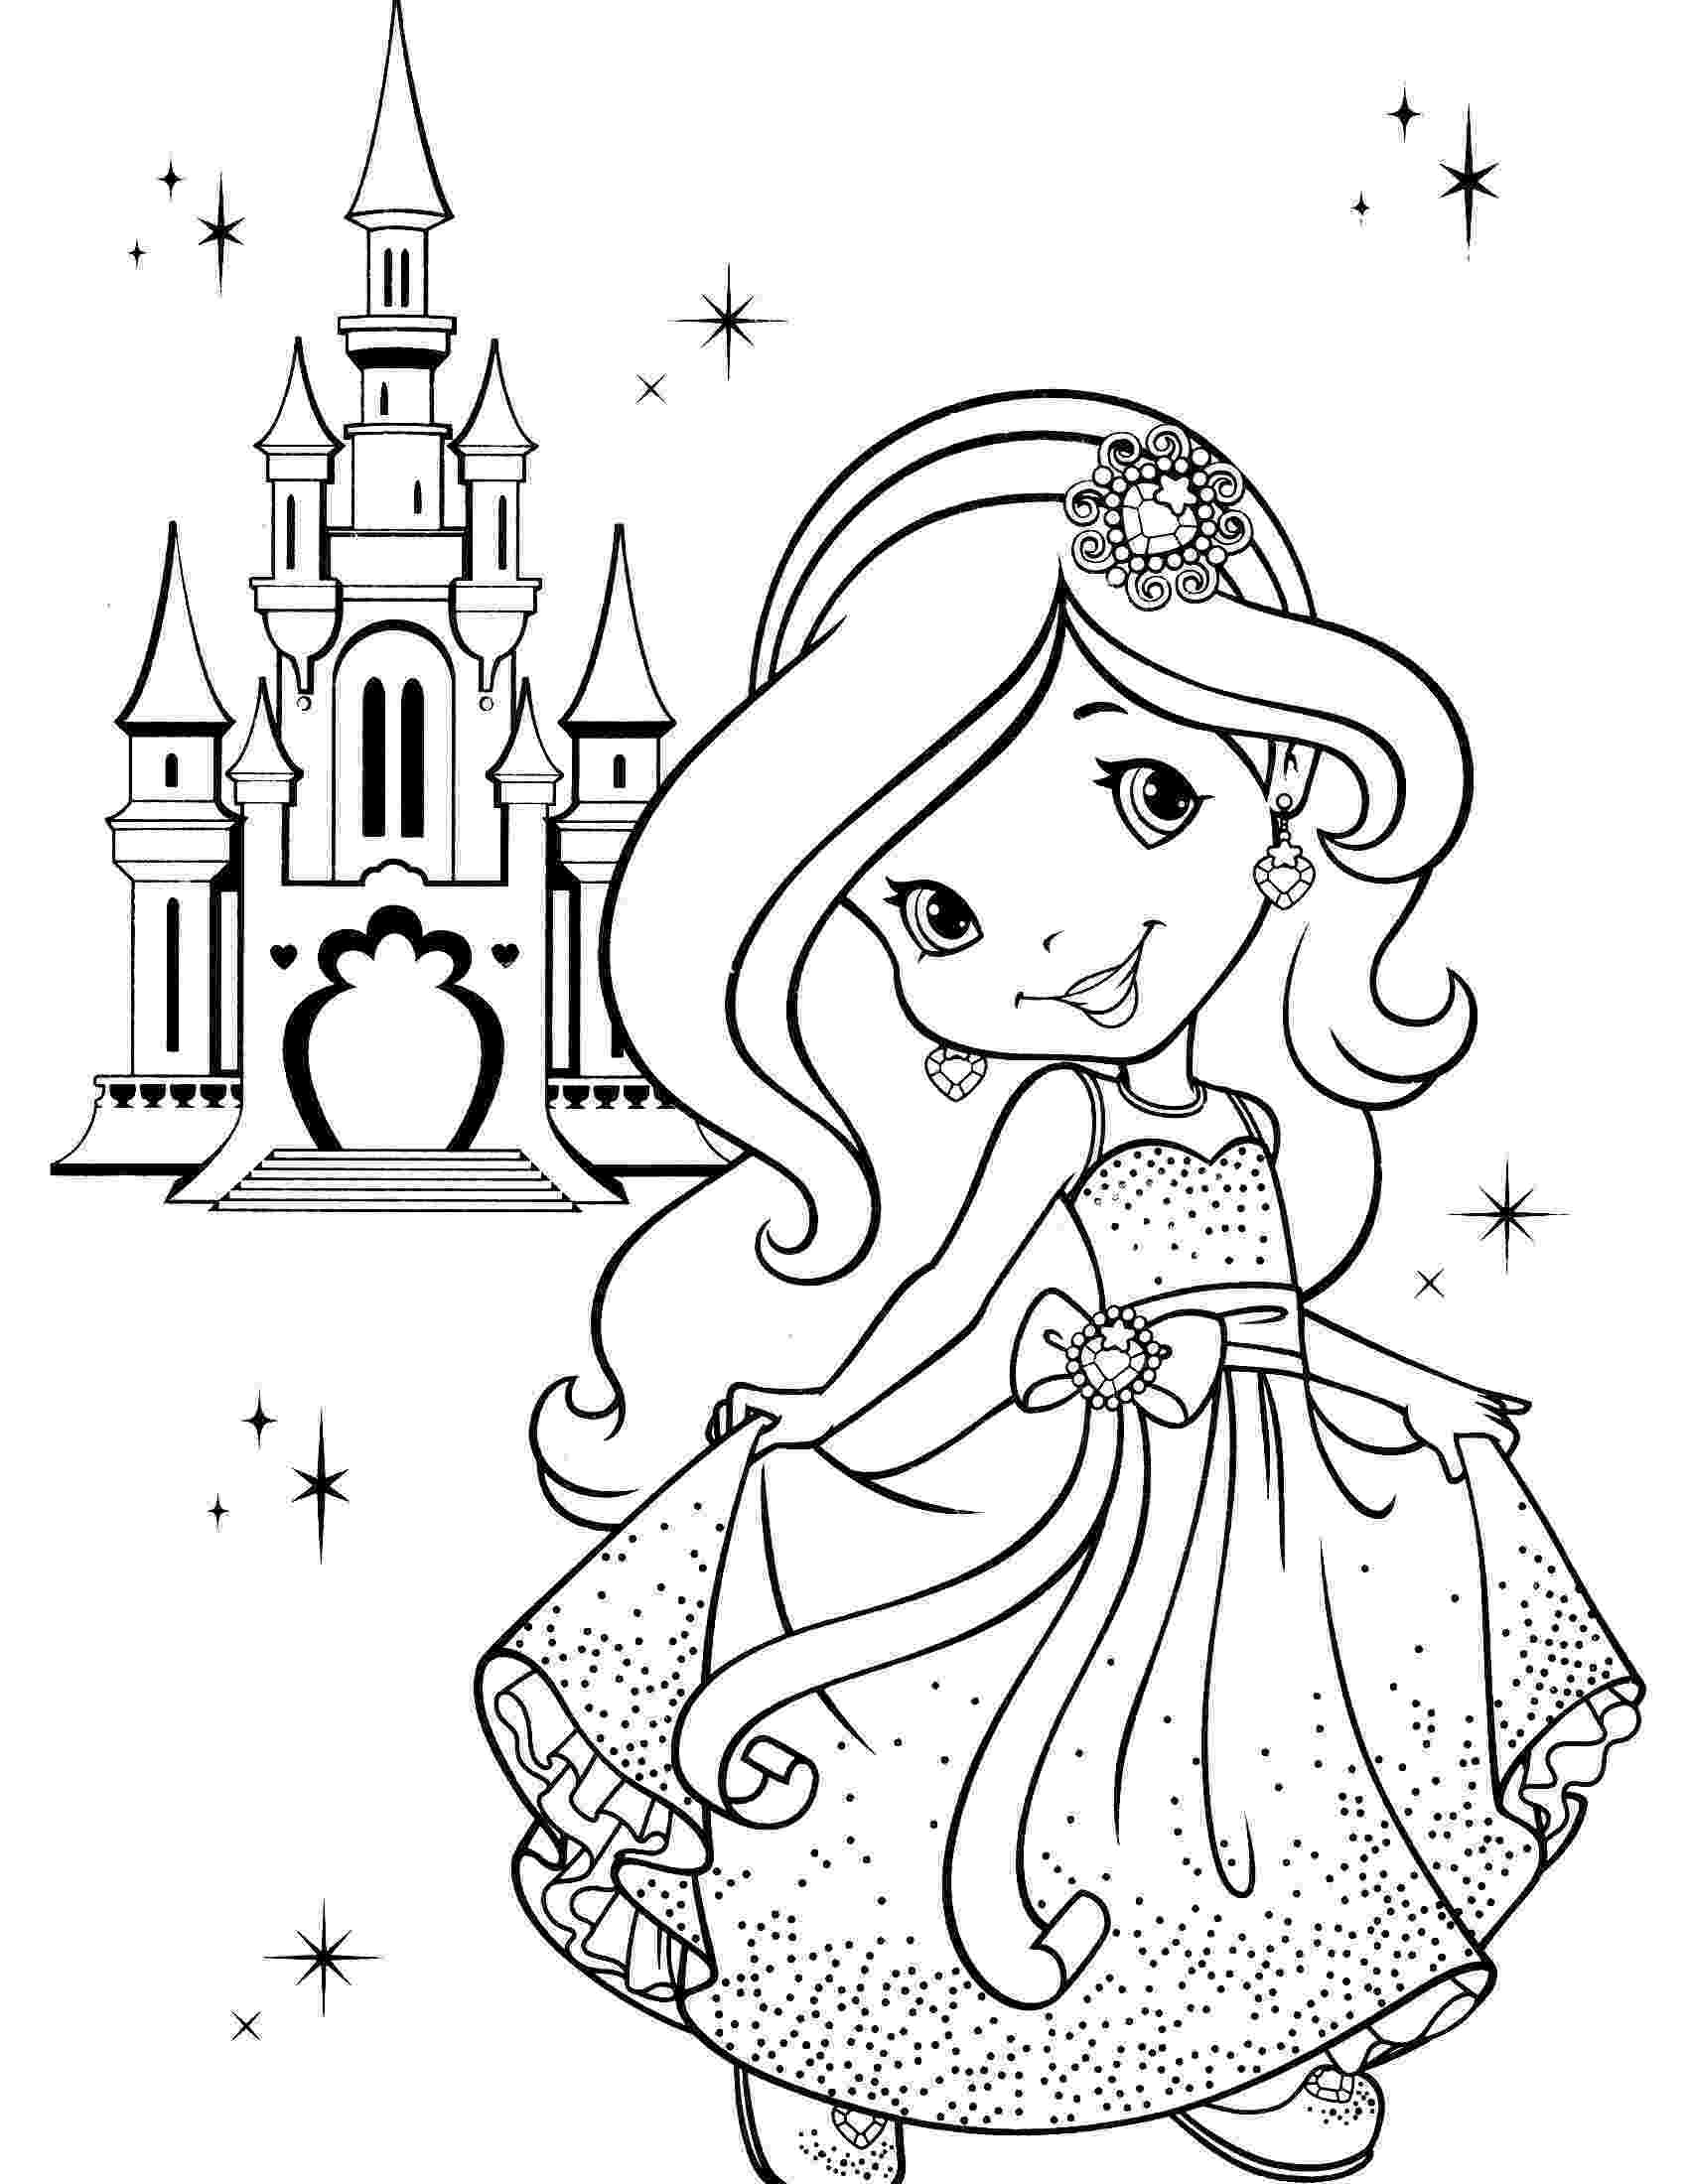 pictures of strawberry shortcake strawberry shortcake coloring page desenhos para colorir of strawberry shortcake pictures